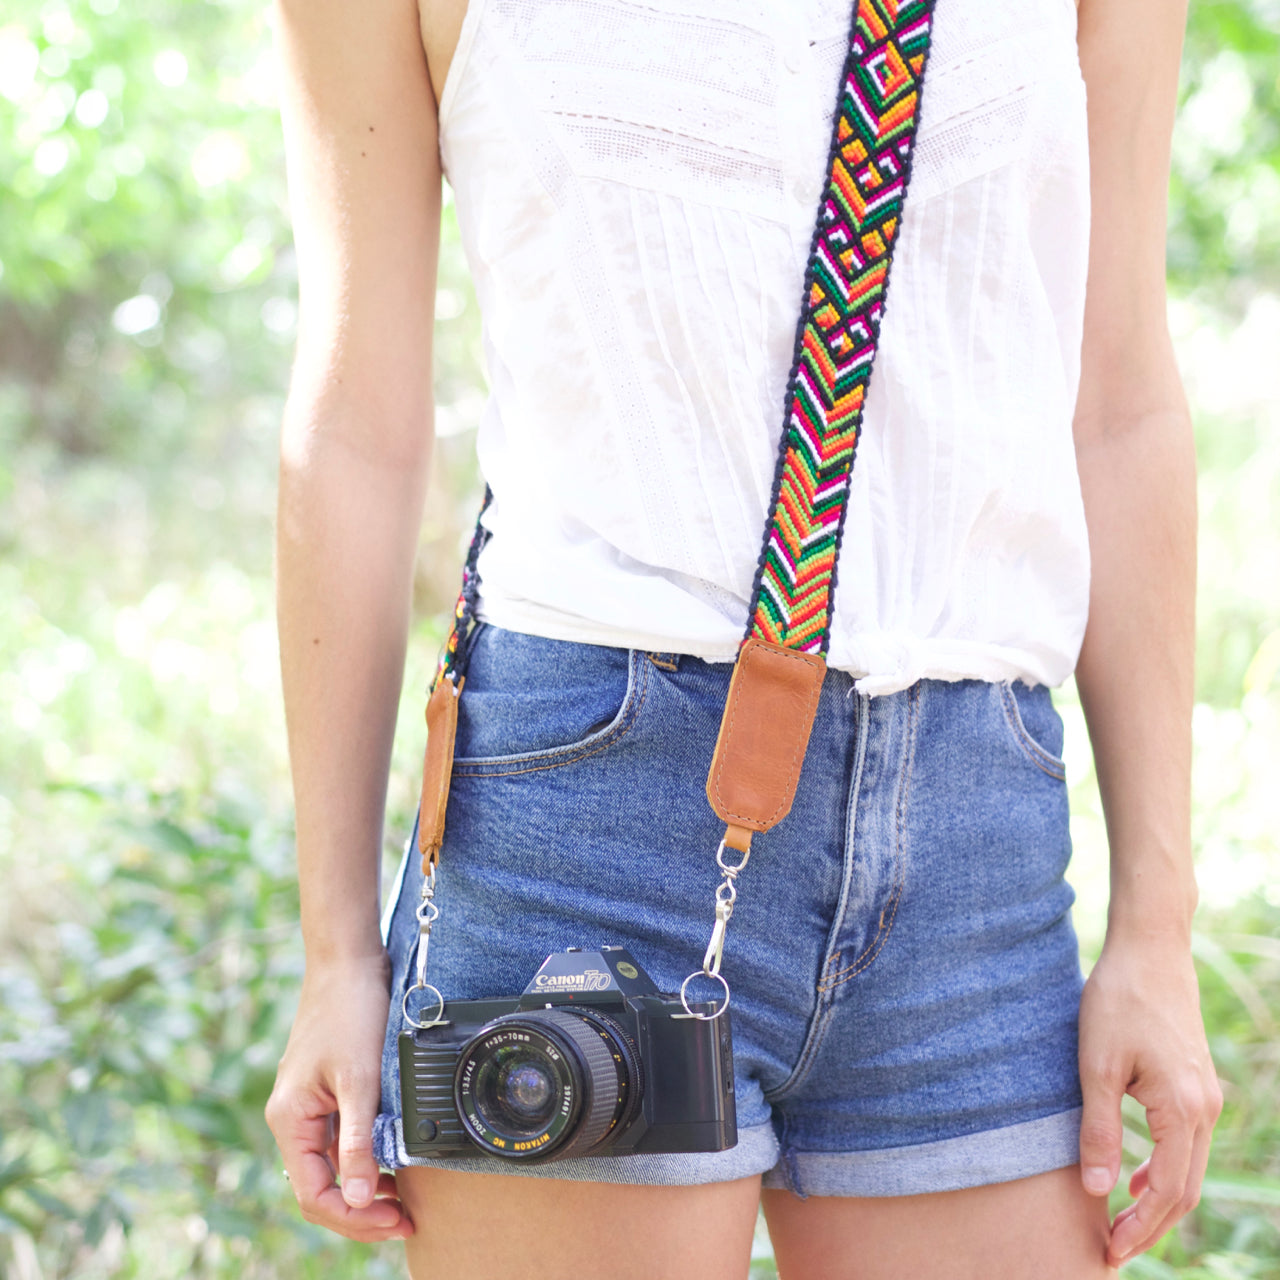 Cielo Cross Body Camera Strap 01  Camera Strap Tan - Cielo Collective handmade Mexico Guatemala